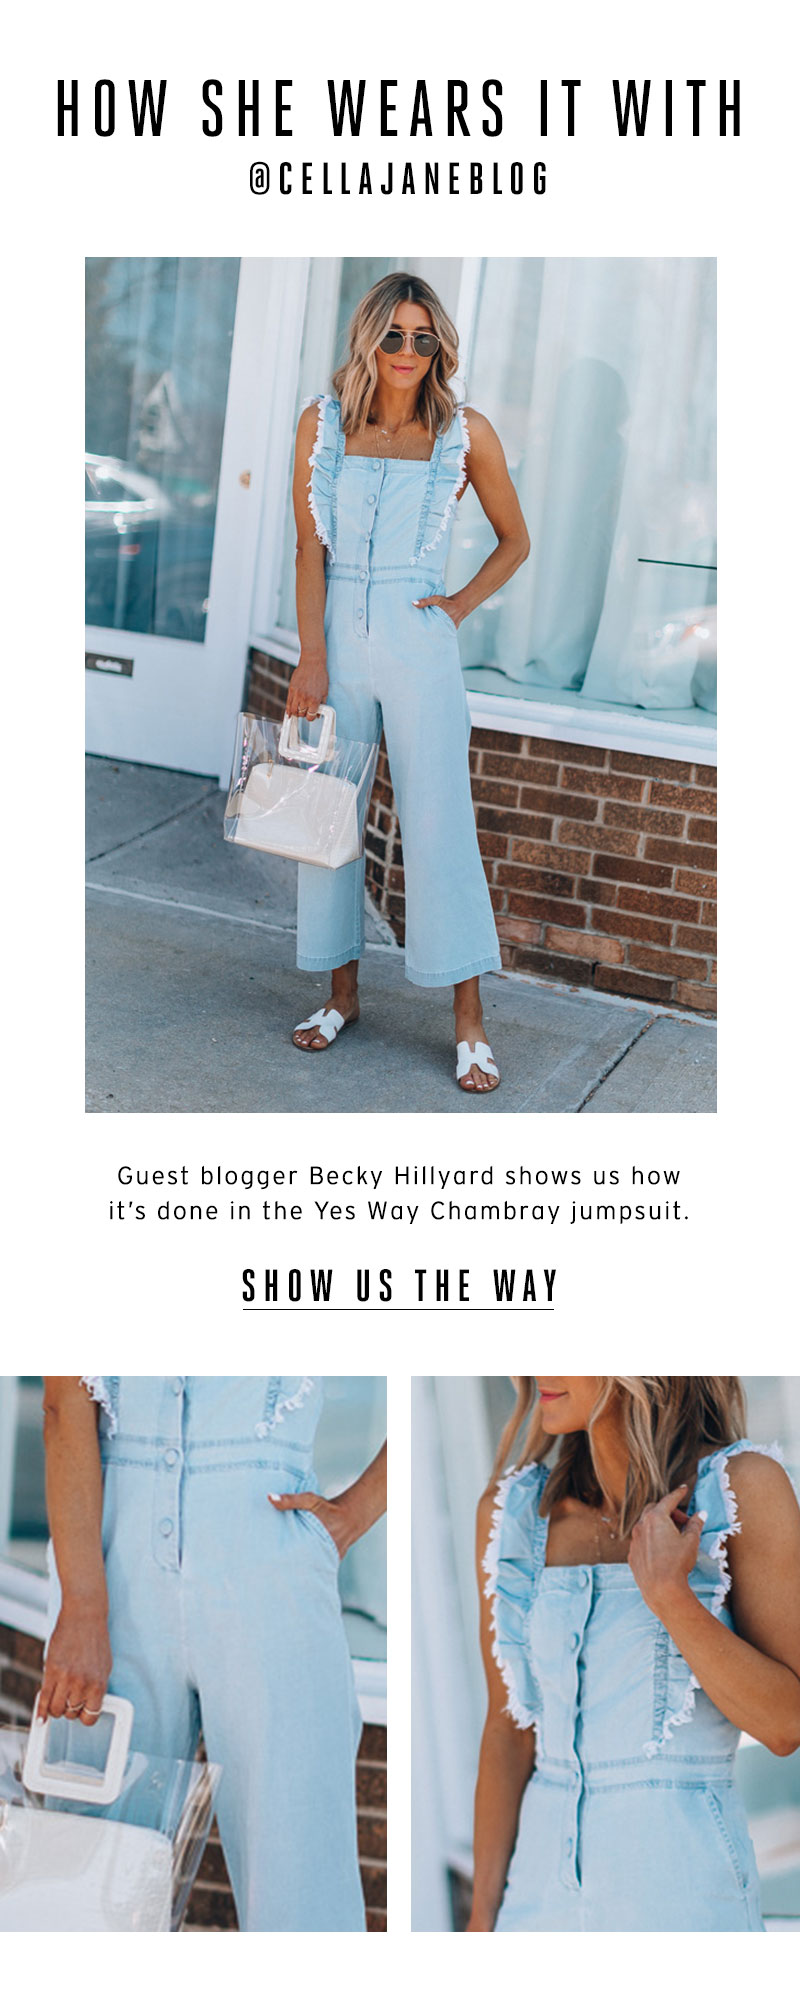 How She Wears it With @CellaJaneBlog. Show us the way.